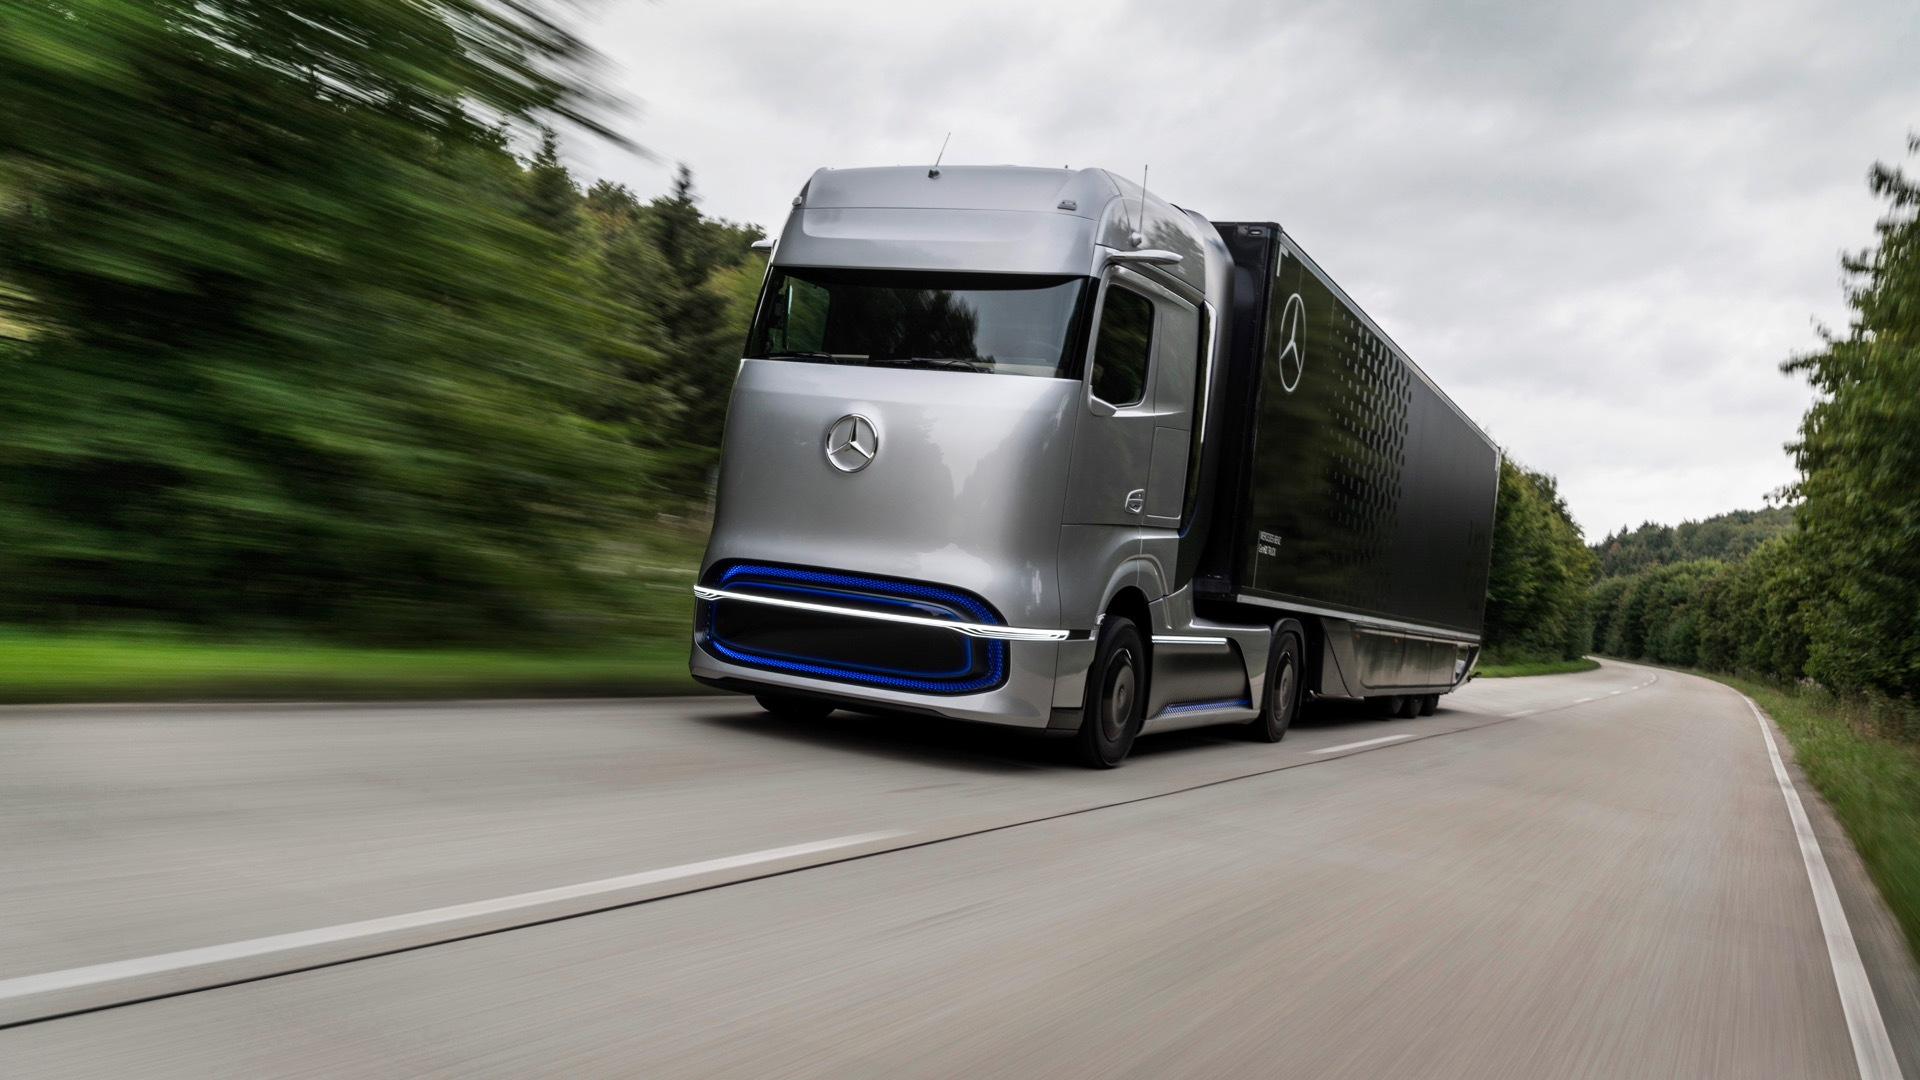 Mercedes-Benz GenH2 hydrogen fuel-cell semi truck